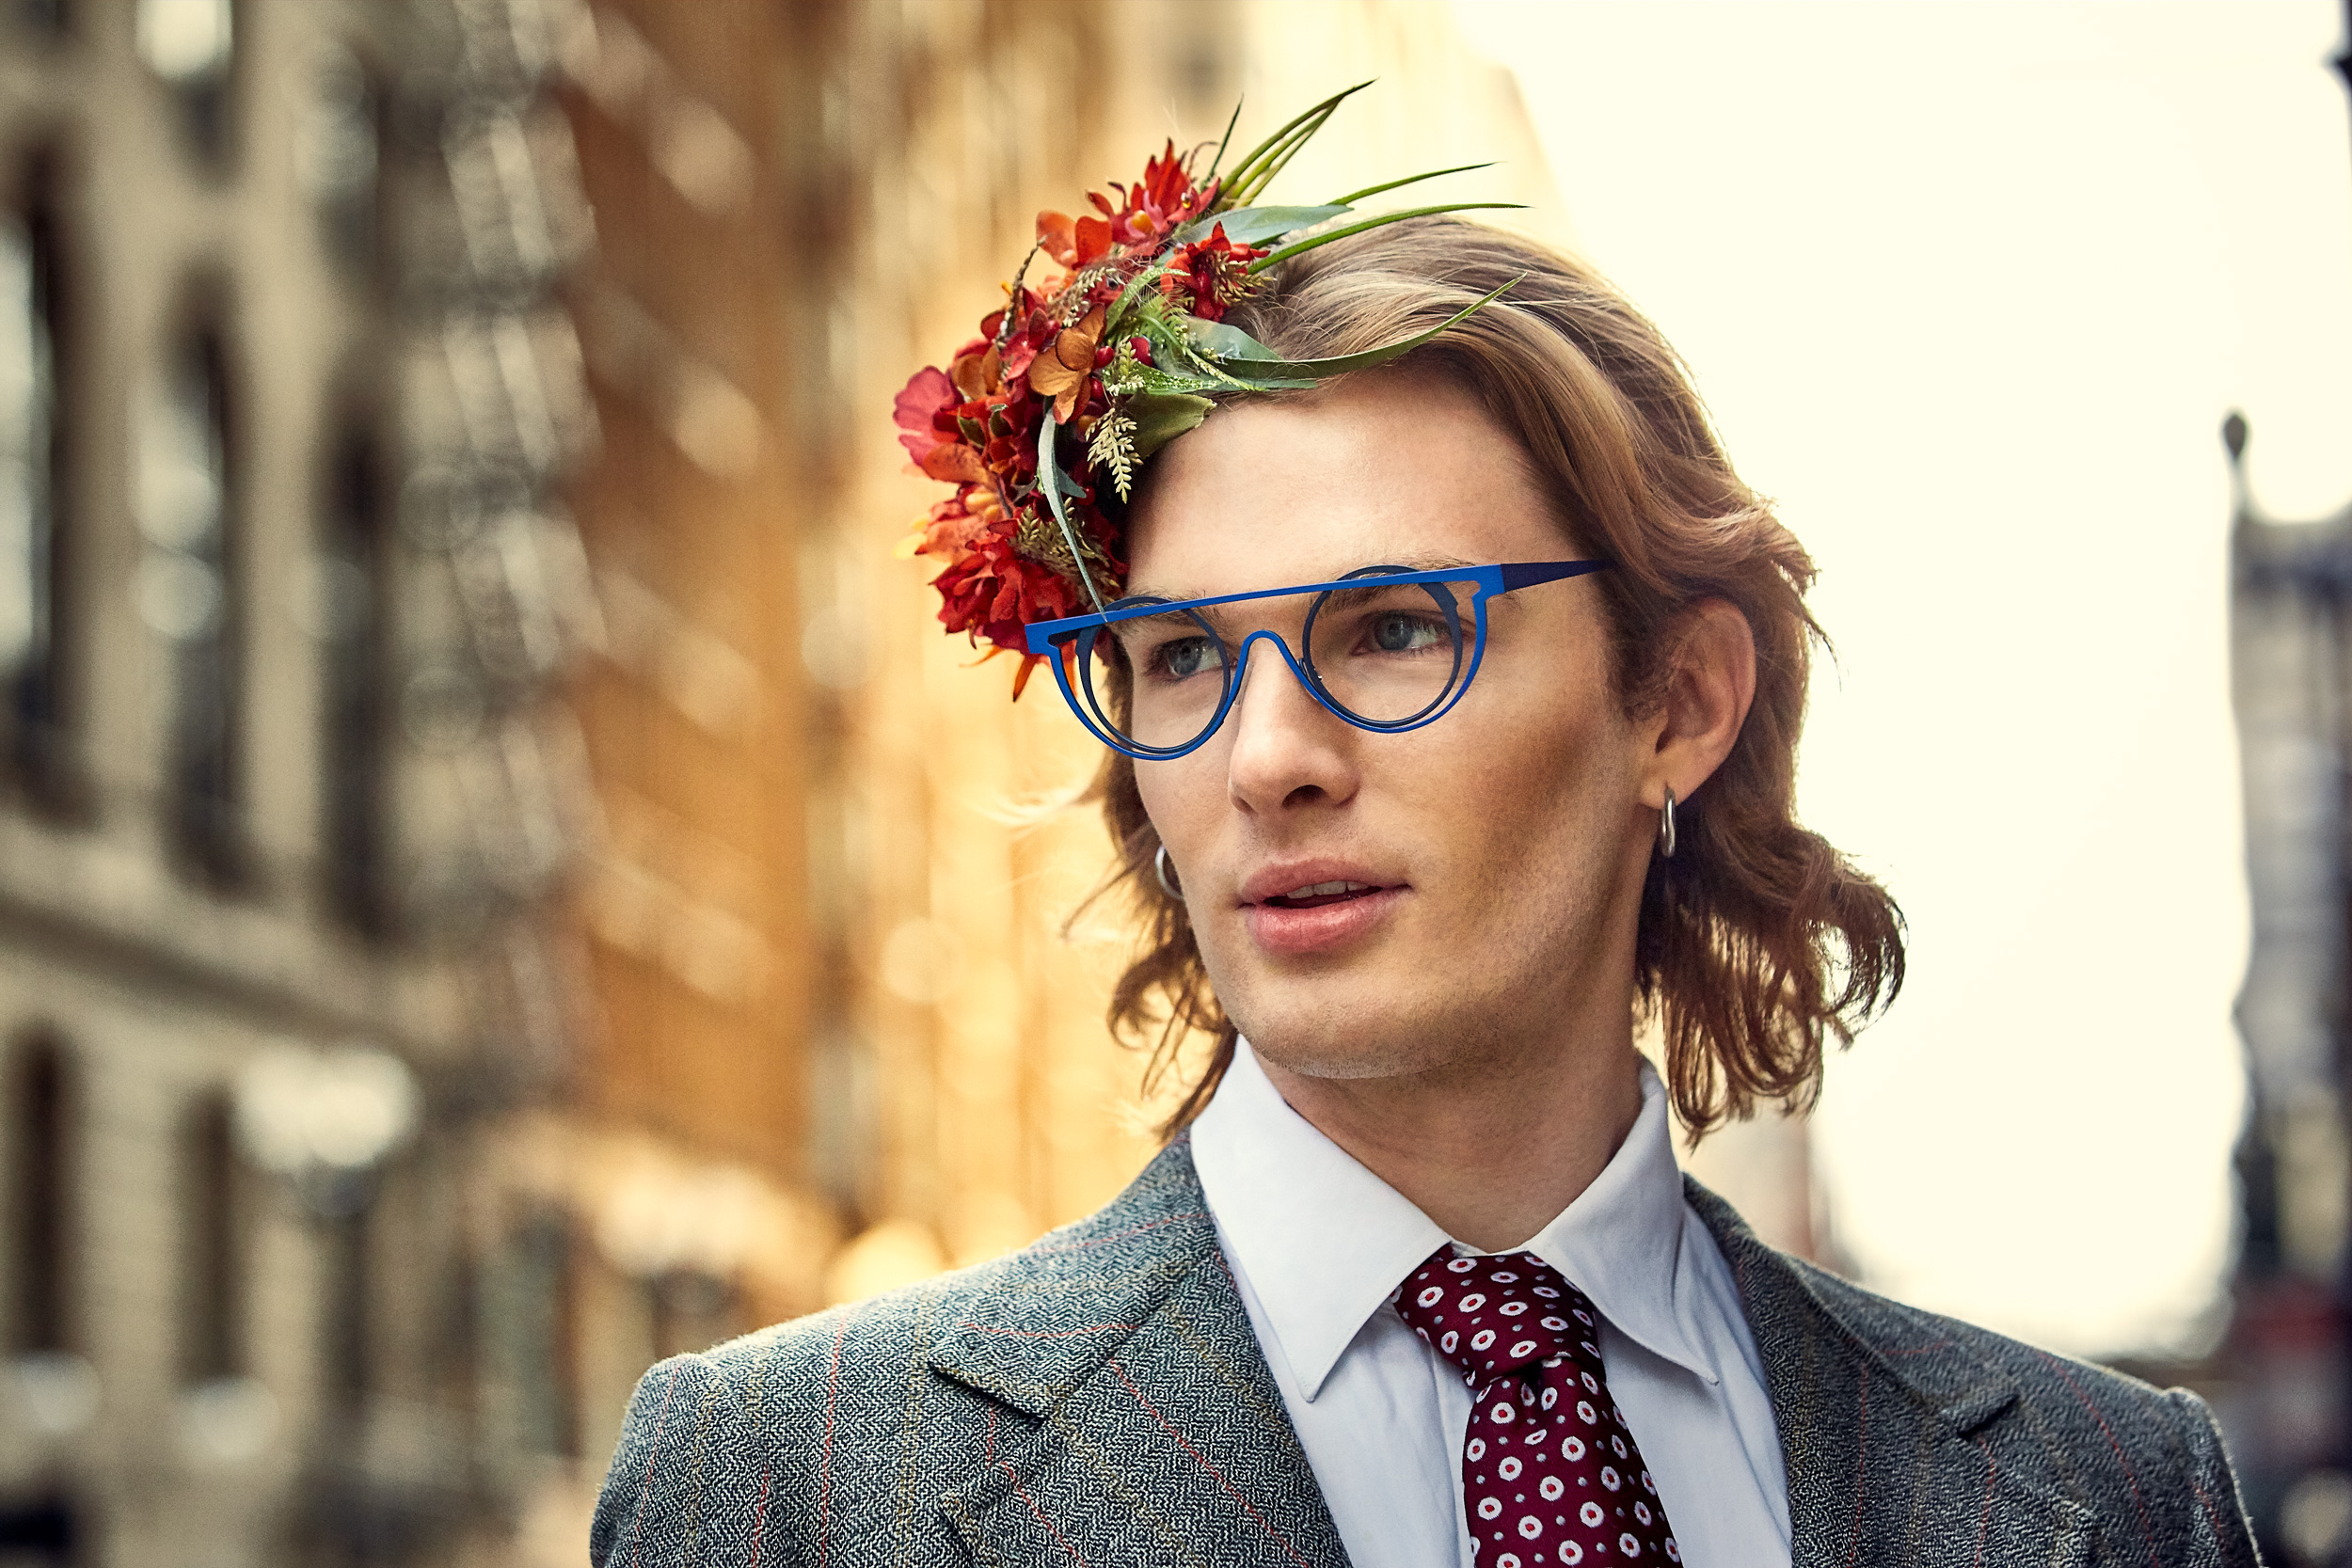 Portrait of man wearing designer glasses and a fascinator photographed by Dave Rentauskas on the streets of Chicago